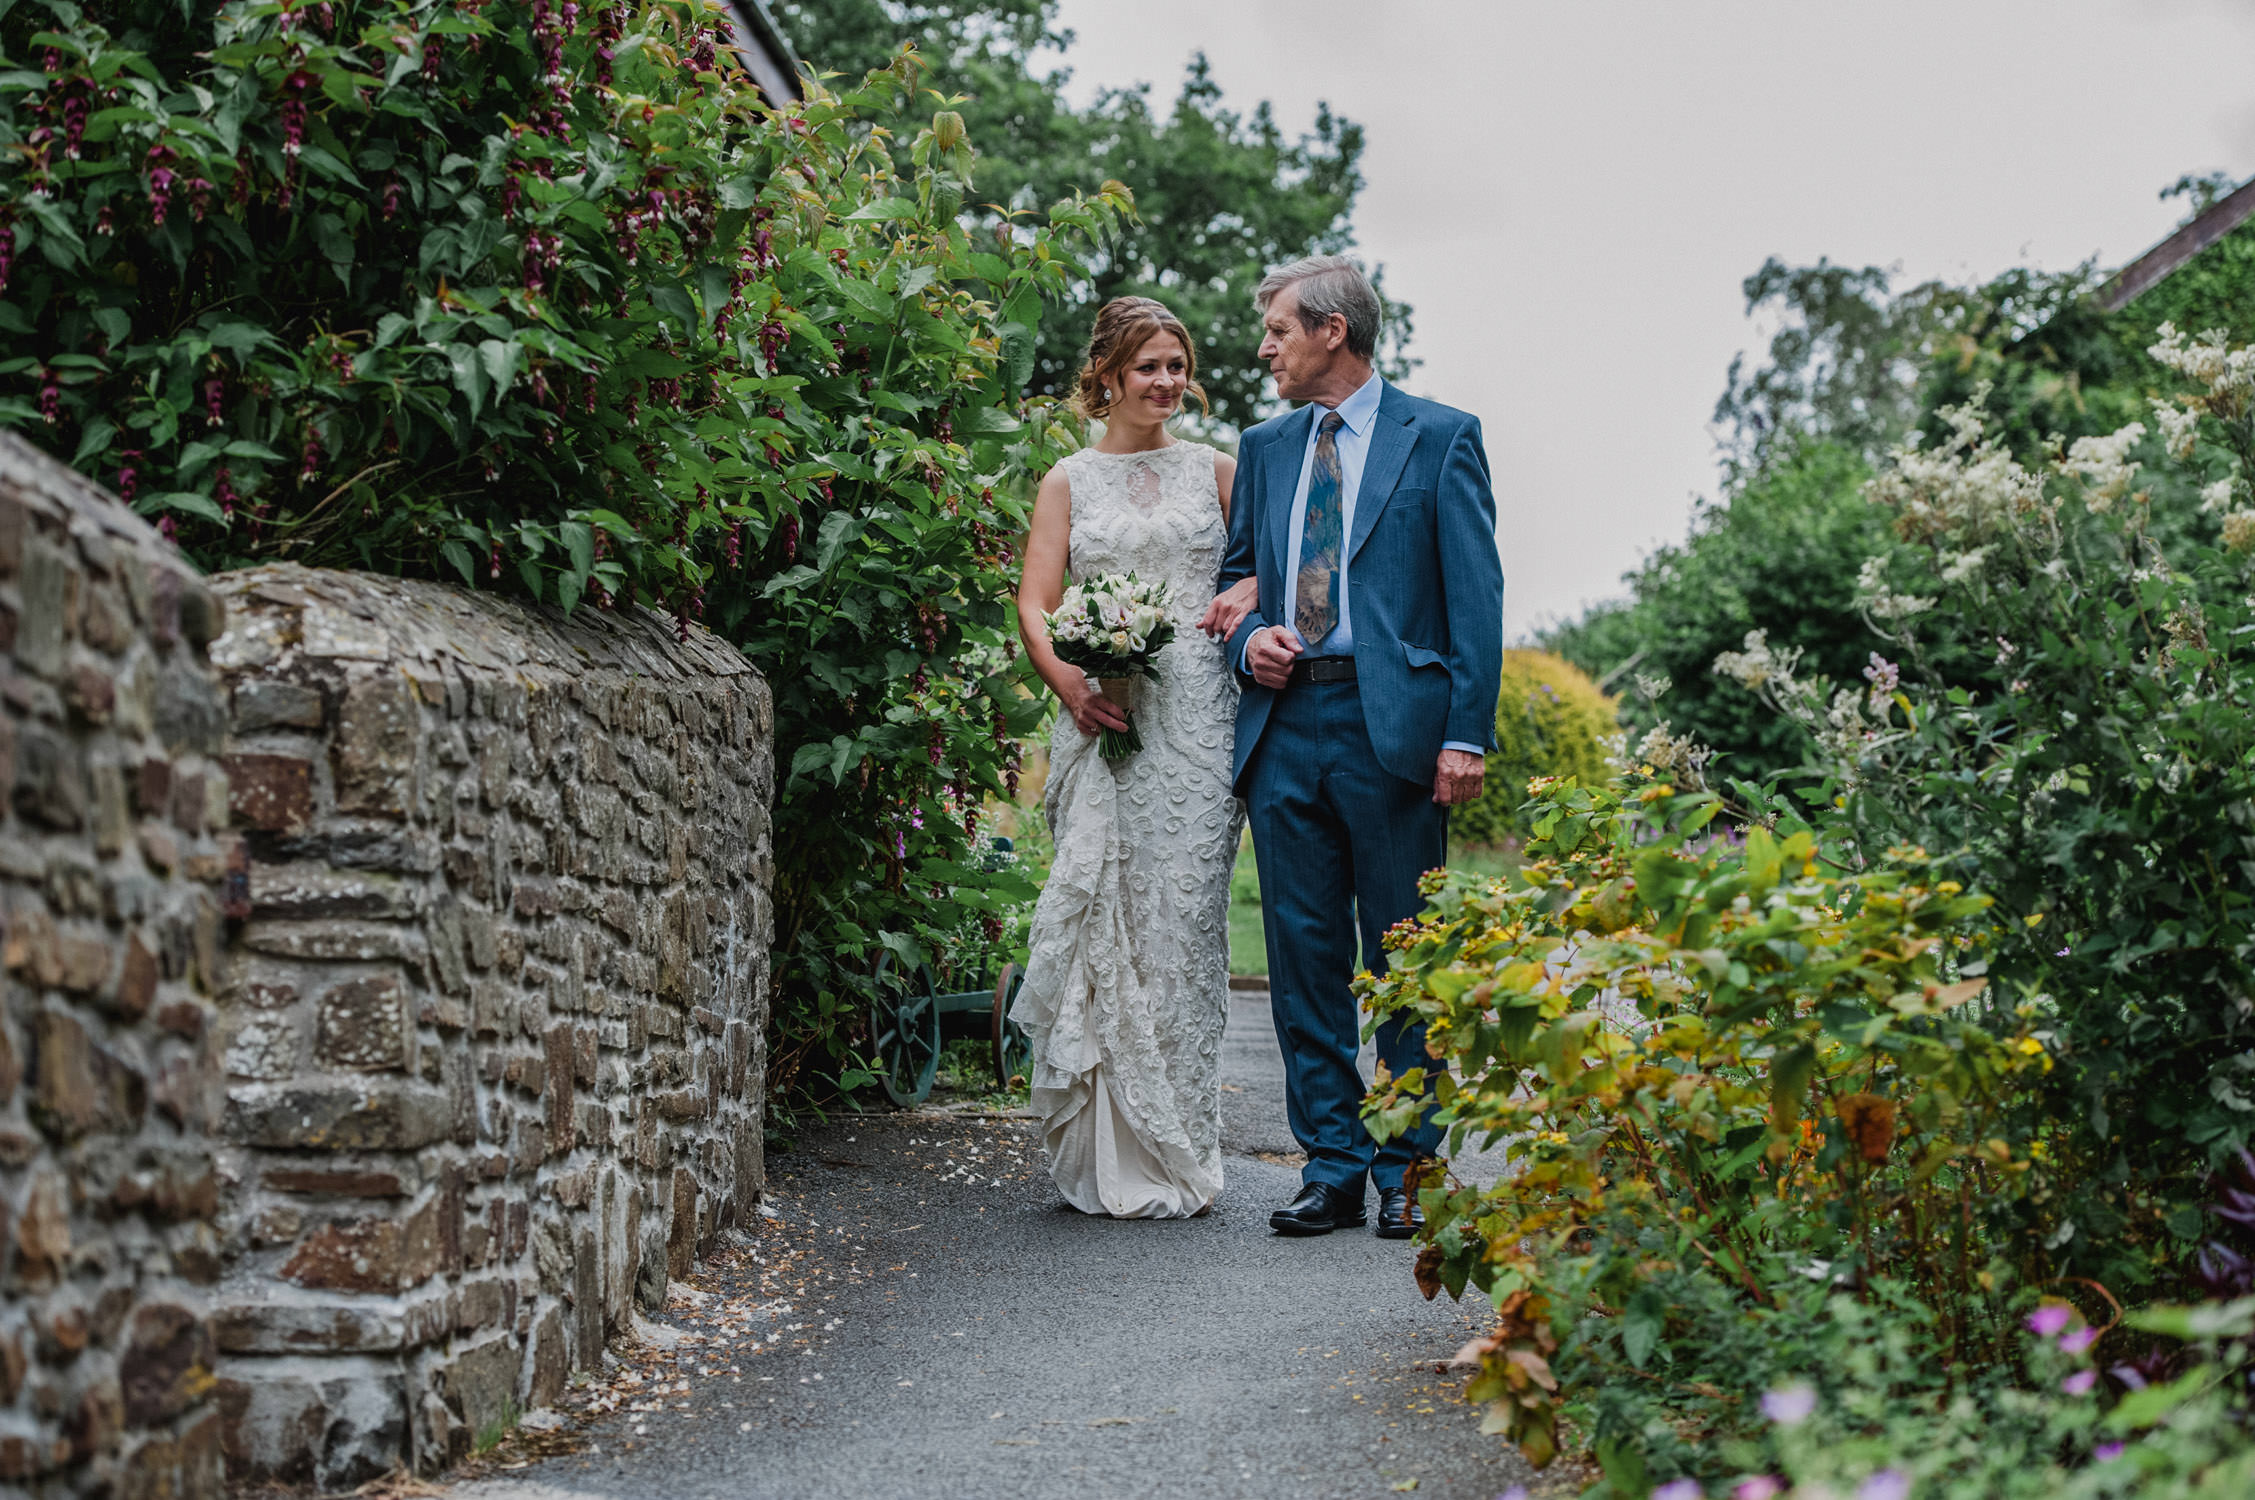 North devon wedding photographer, countryways cottages wedding photography north devon, bride and father walking to ceremony at country ways cottages in north devon